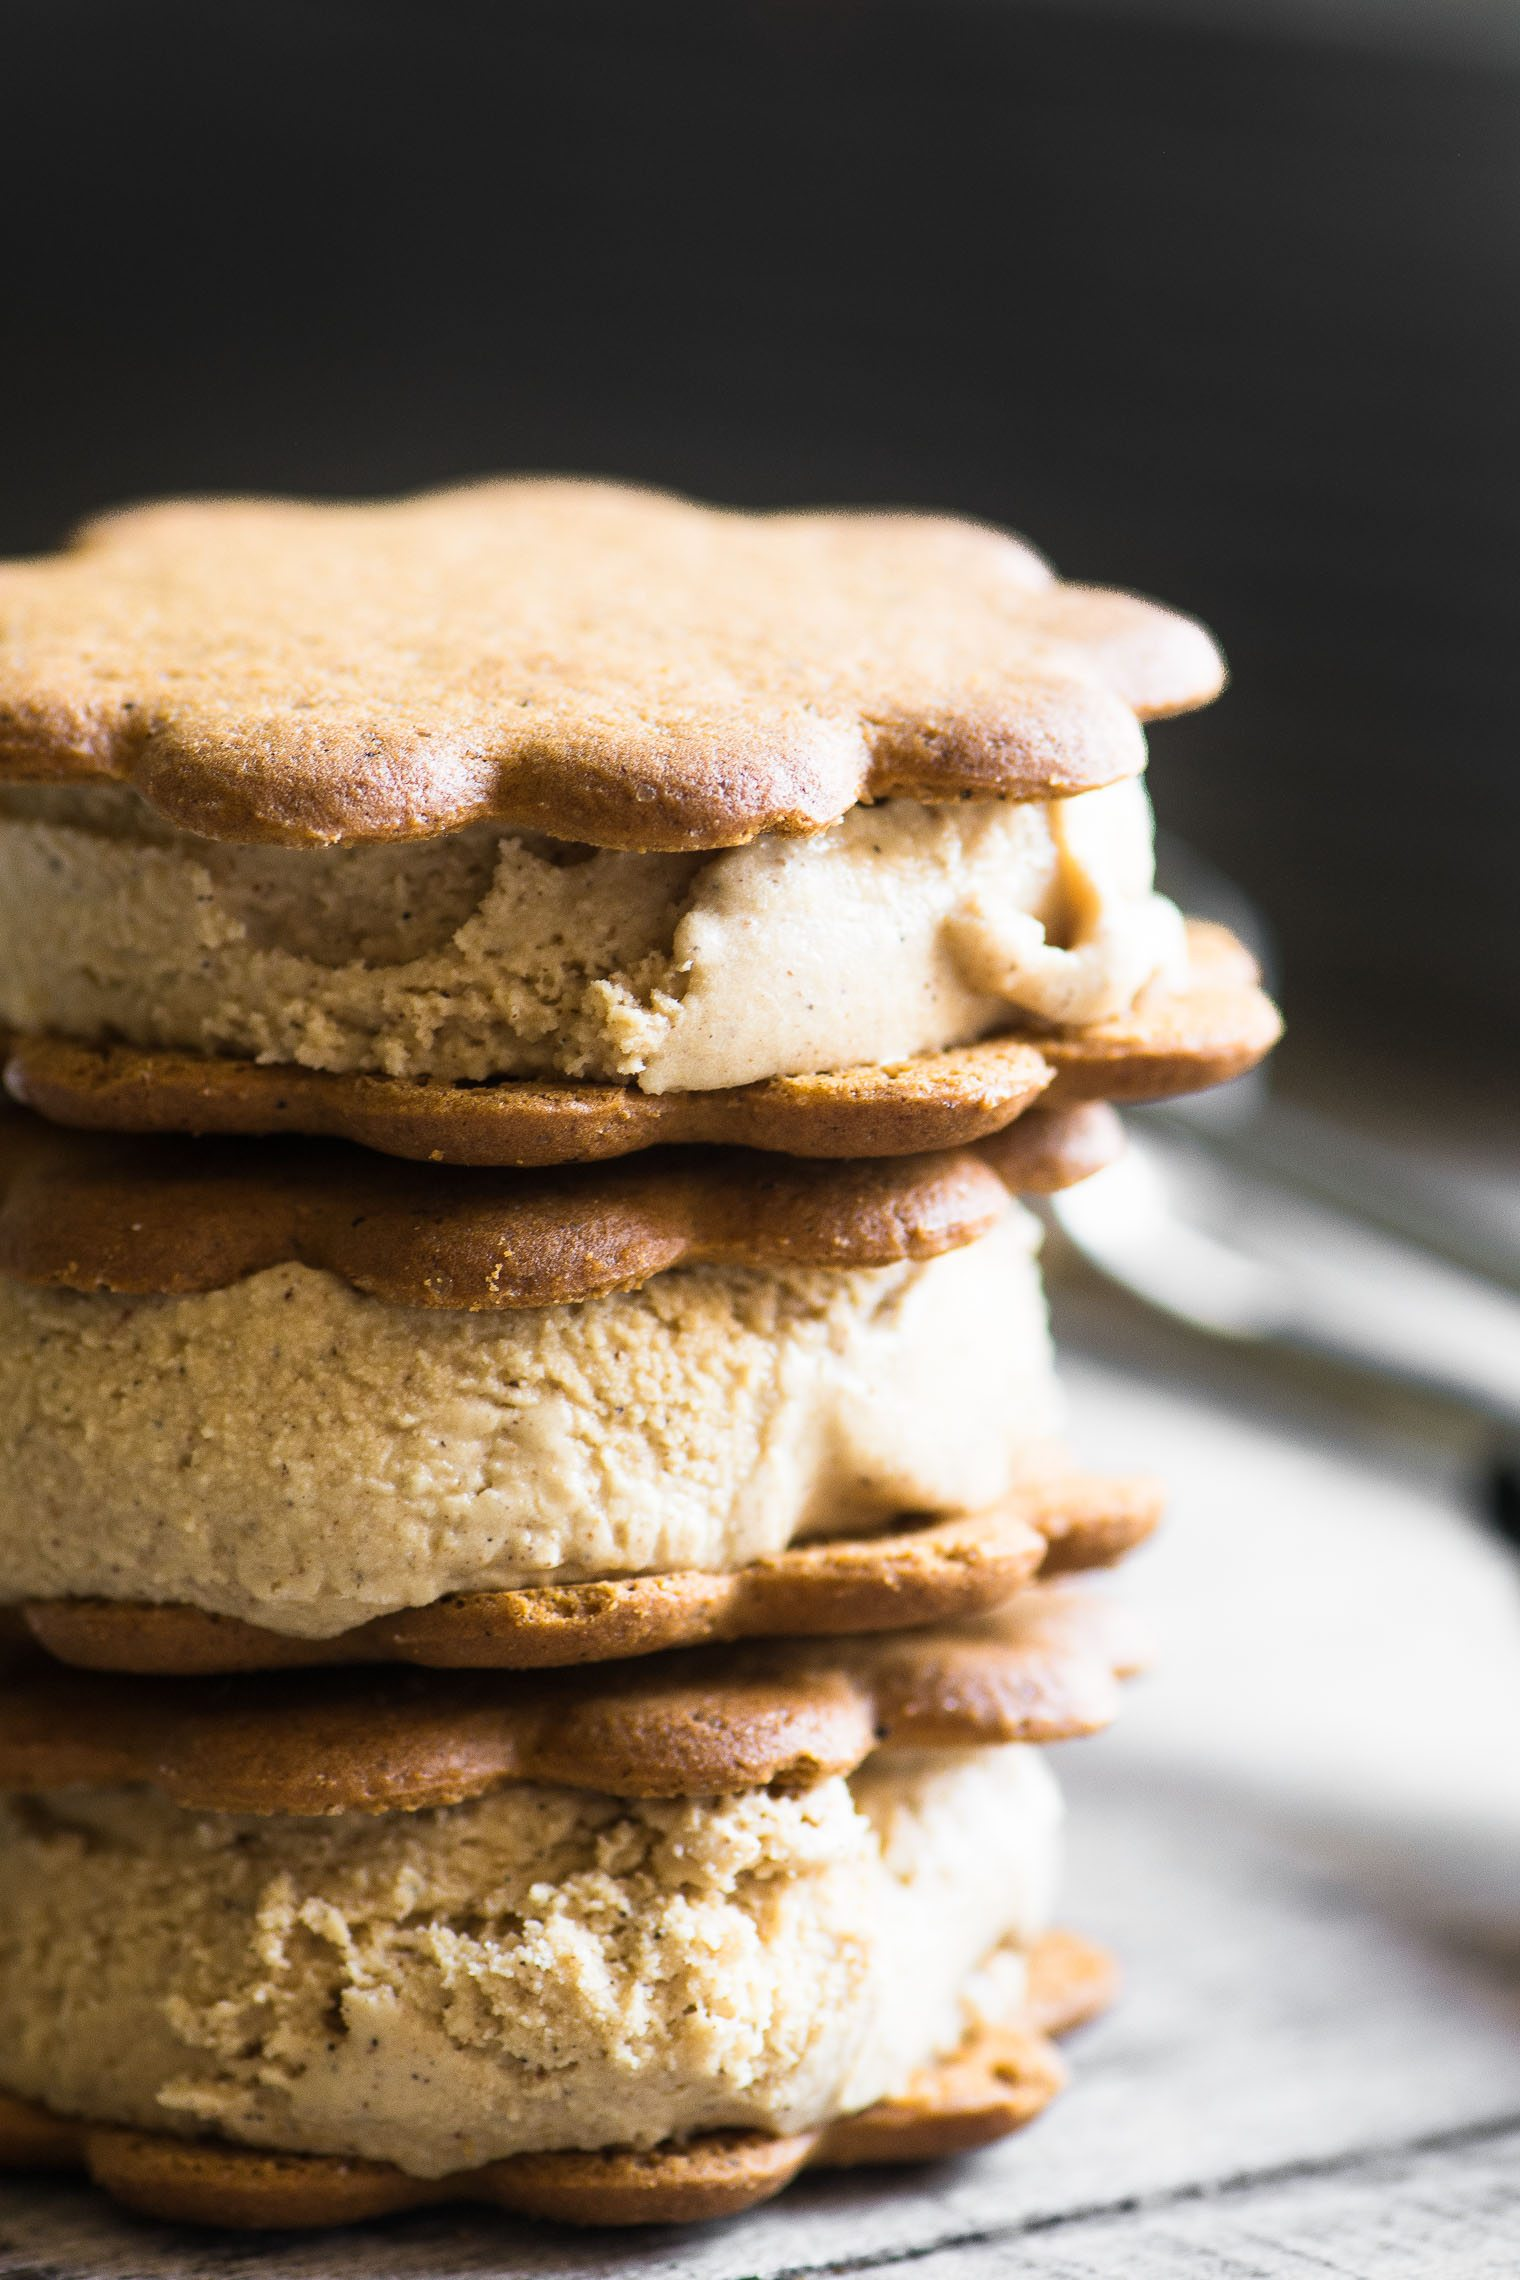 a stack of gingerbread ice cream sandwiches made with gingersnaps